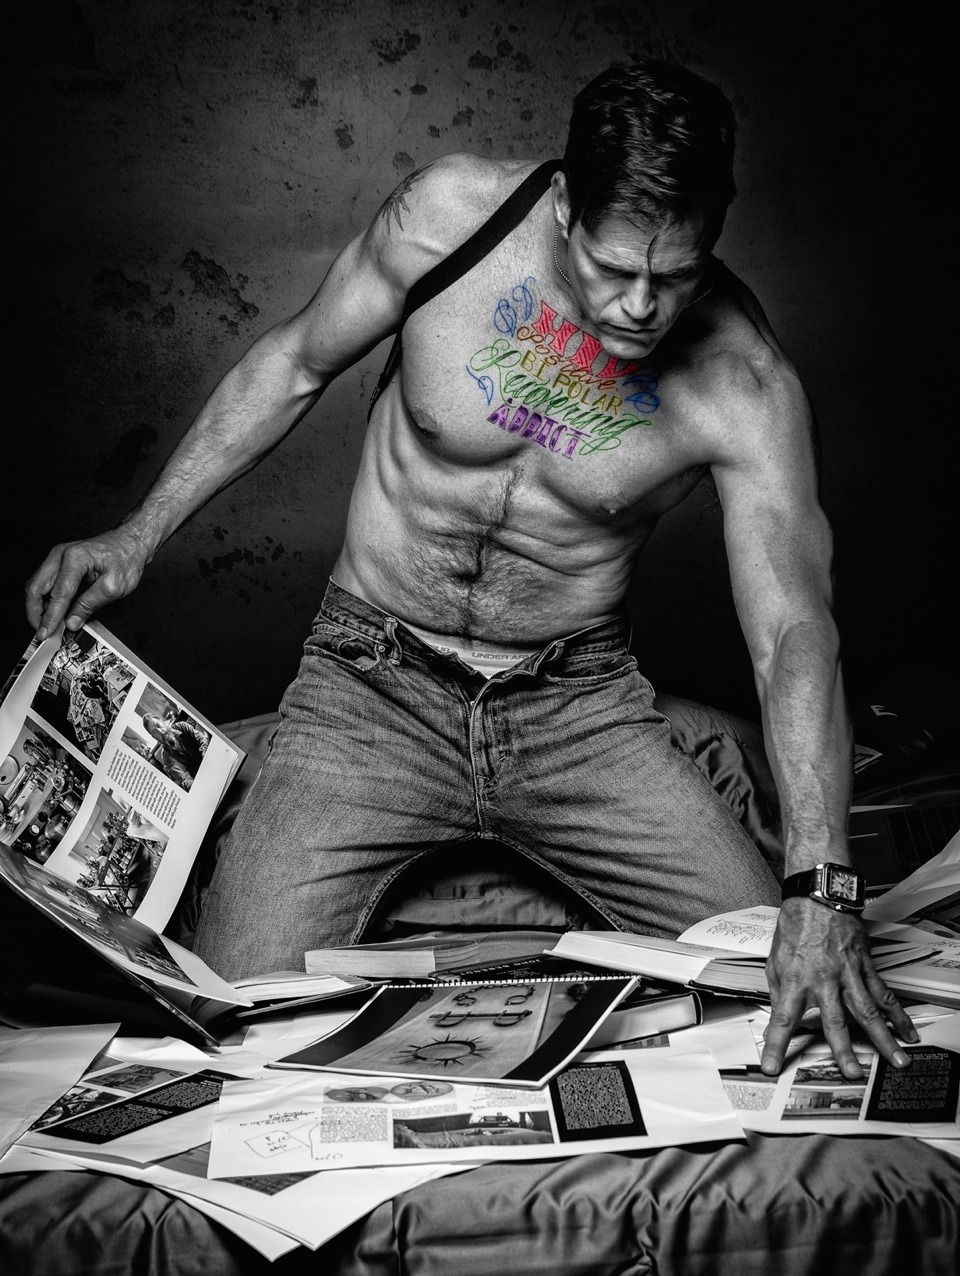 """Morgan Molthrop, a former Wall Street executive, had the words """"HIV Positive / Bipolar / Recovering Addict"""" tattooed on chest to disclose his bipolar disorder, addiction and HIV. He had a portrait made of his tattoos, which he shared with us at POZ, and asked us to help him spread the word about his disclosure. Here is his story."""